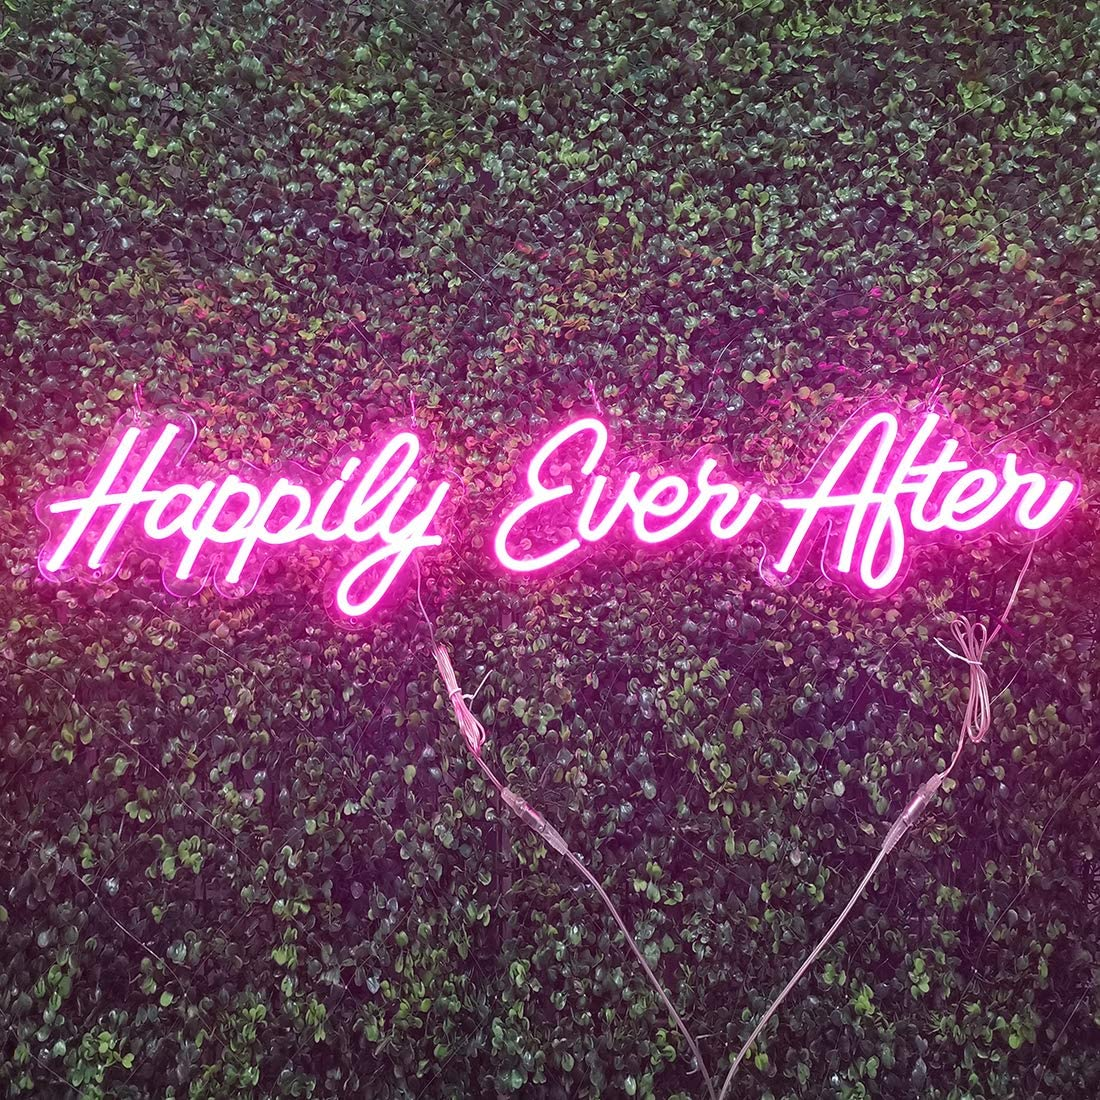 Britrio LED Neon Light Sign, Pink Happily Ever After Hanging Neon Art Wall Sign for Party Wedding Hashtag Home Decor Kid Bedroom Bar 12V (Power Adapter Include)